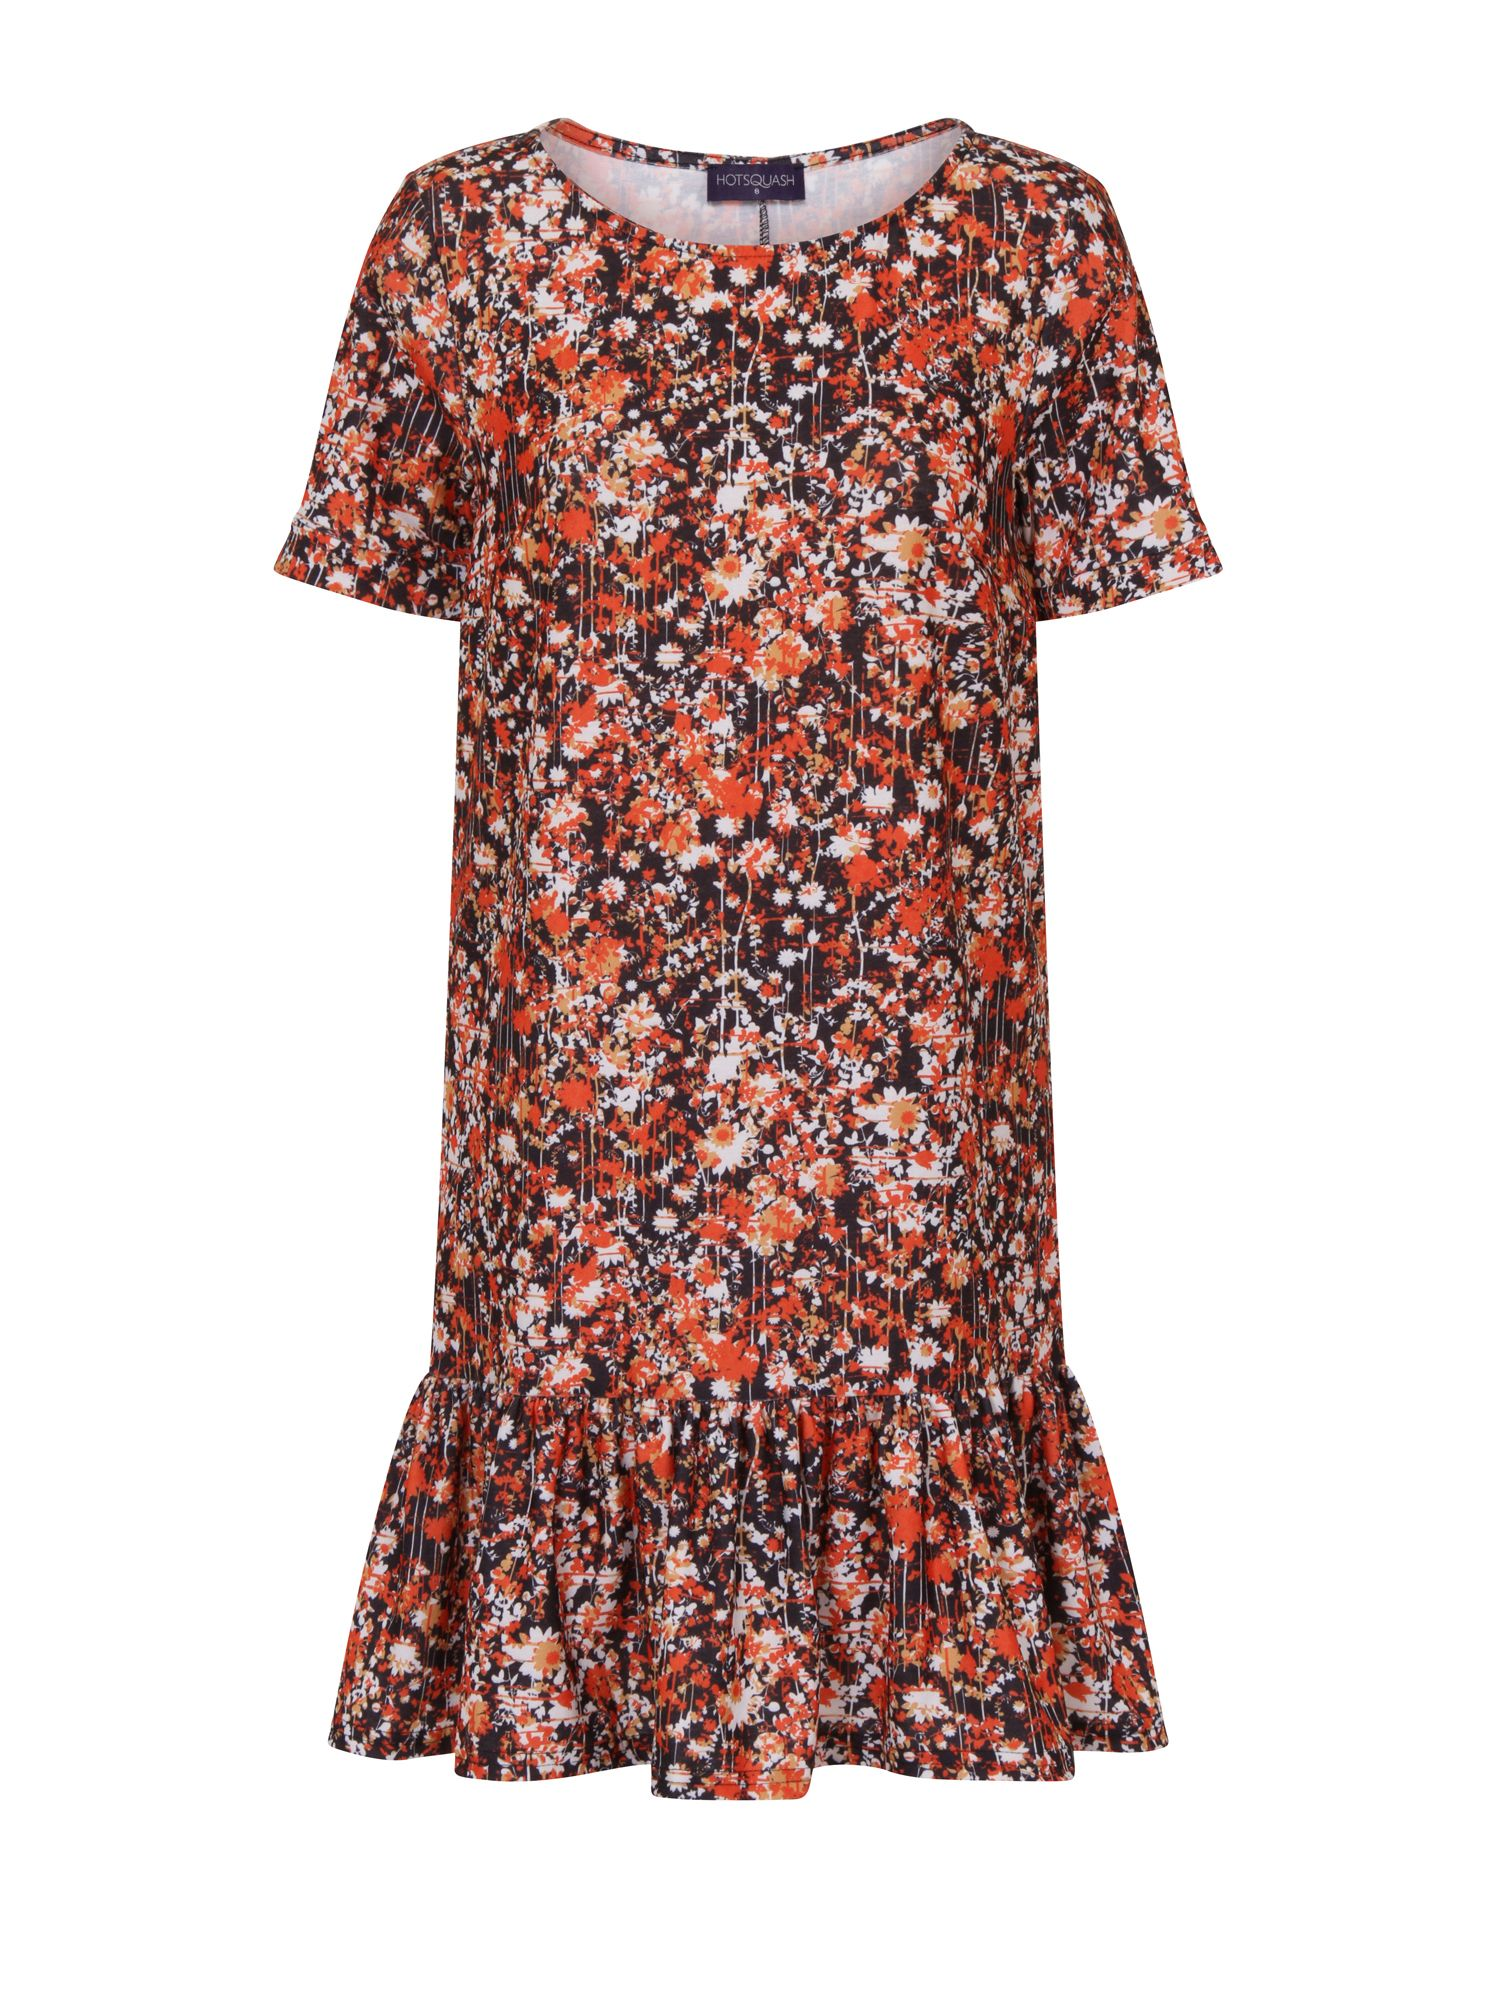 HotSquash Floral Drop Waist Dress, Red